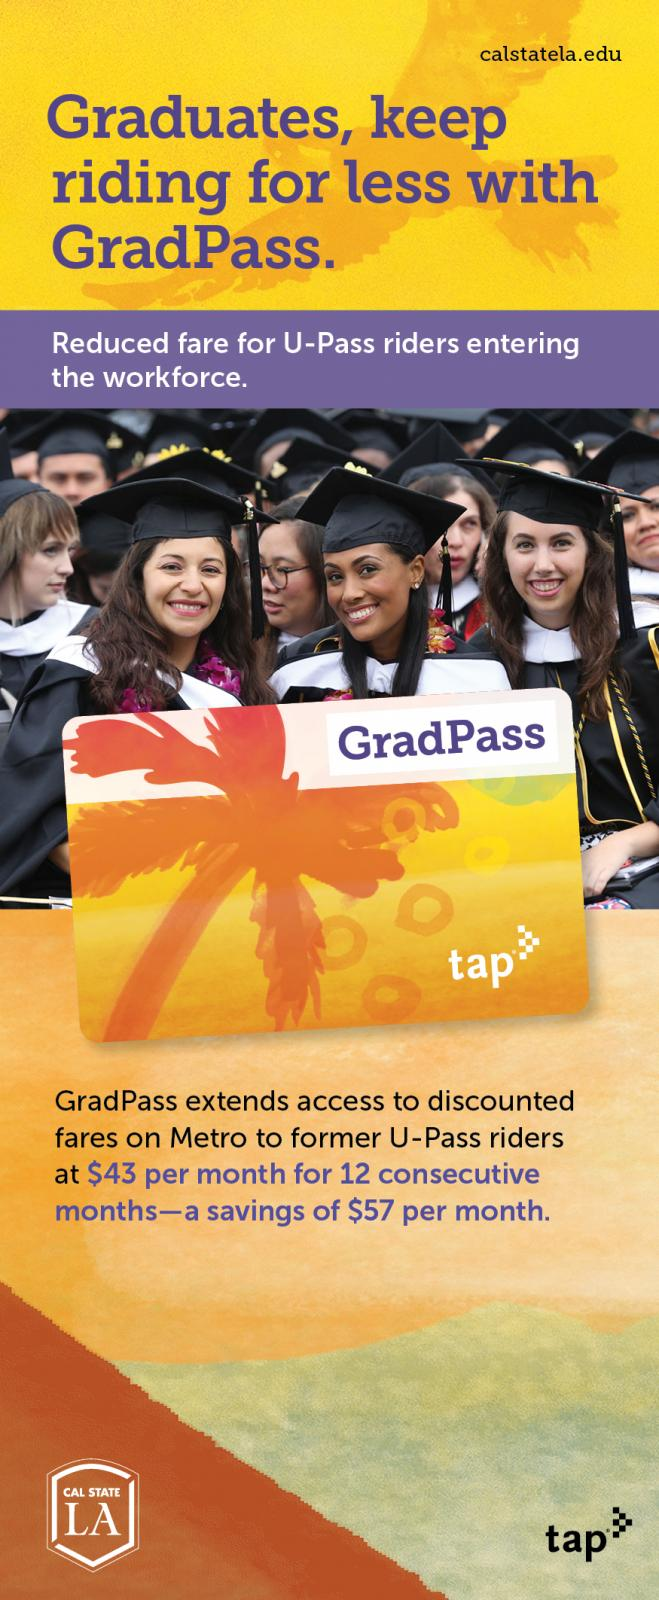 Graduates, keep riding for less with Grad-Pass